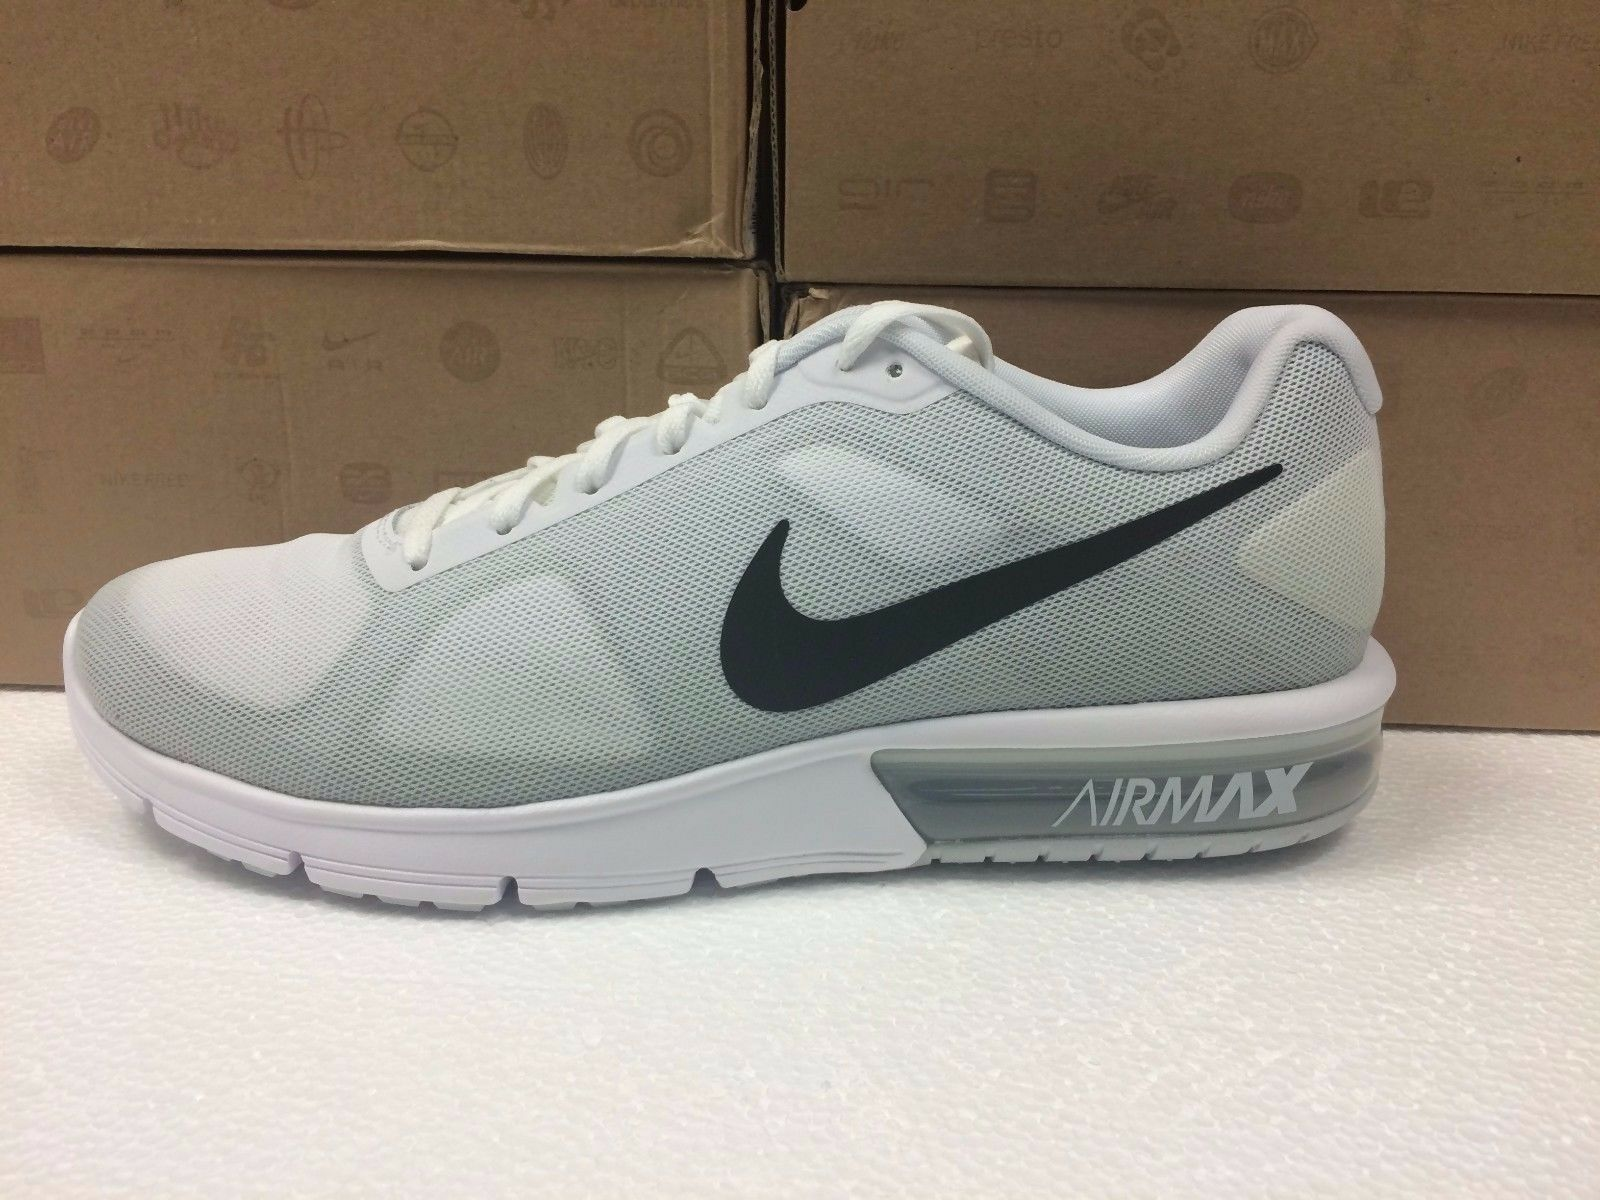 NEW MENS NIKE AIR MAX SEQUENT 719912 100 SNEAKERS-SHOES-SIZE 11.5